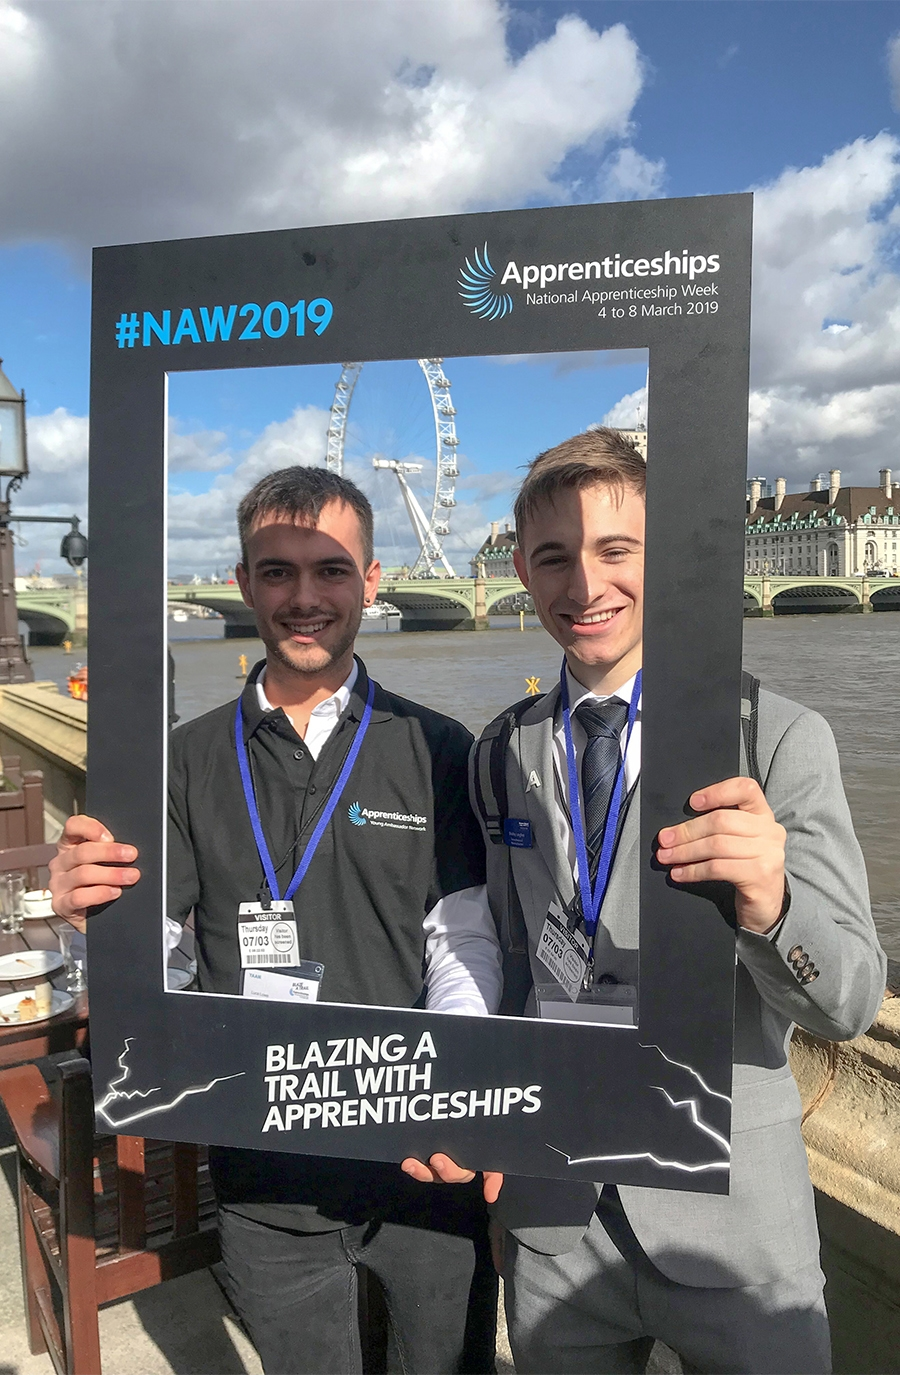 Bradley (right) and fellow ambassador Luca Lowe (left) at House of Commons celebrating National Apprenticeship Week and National Careers Week